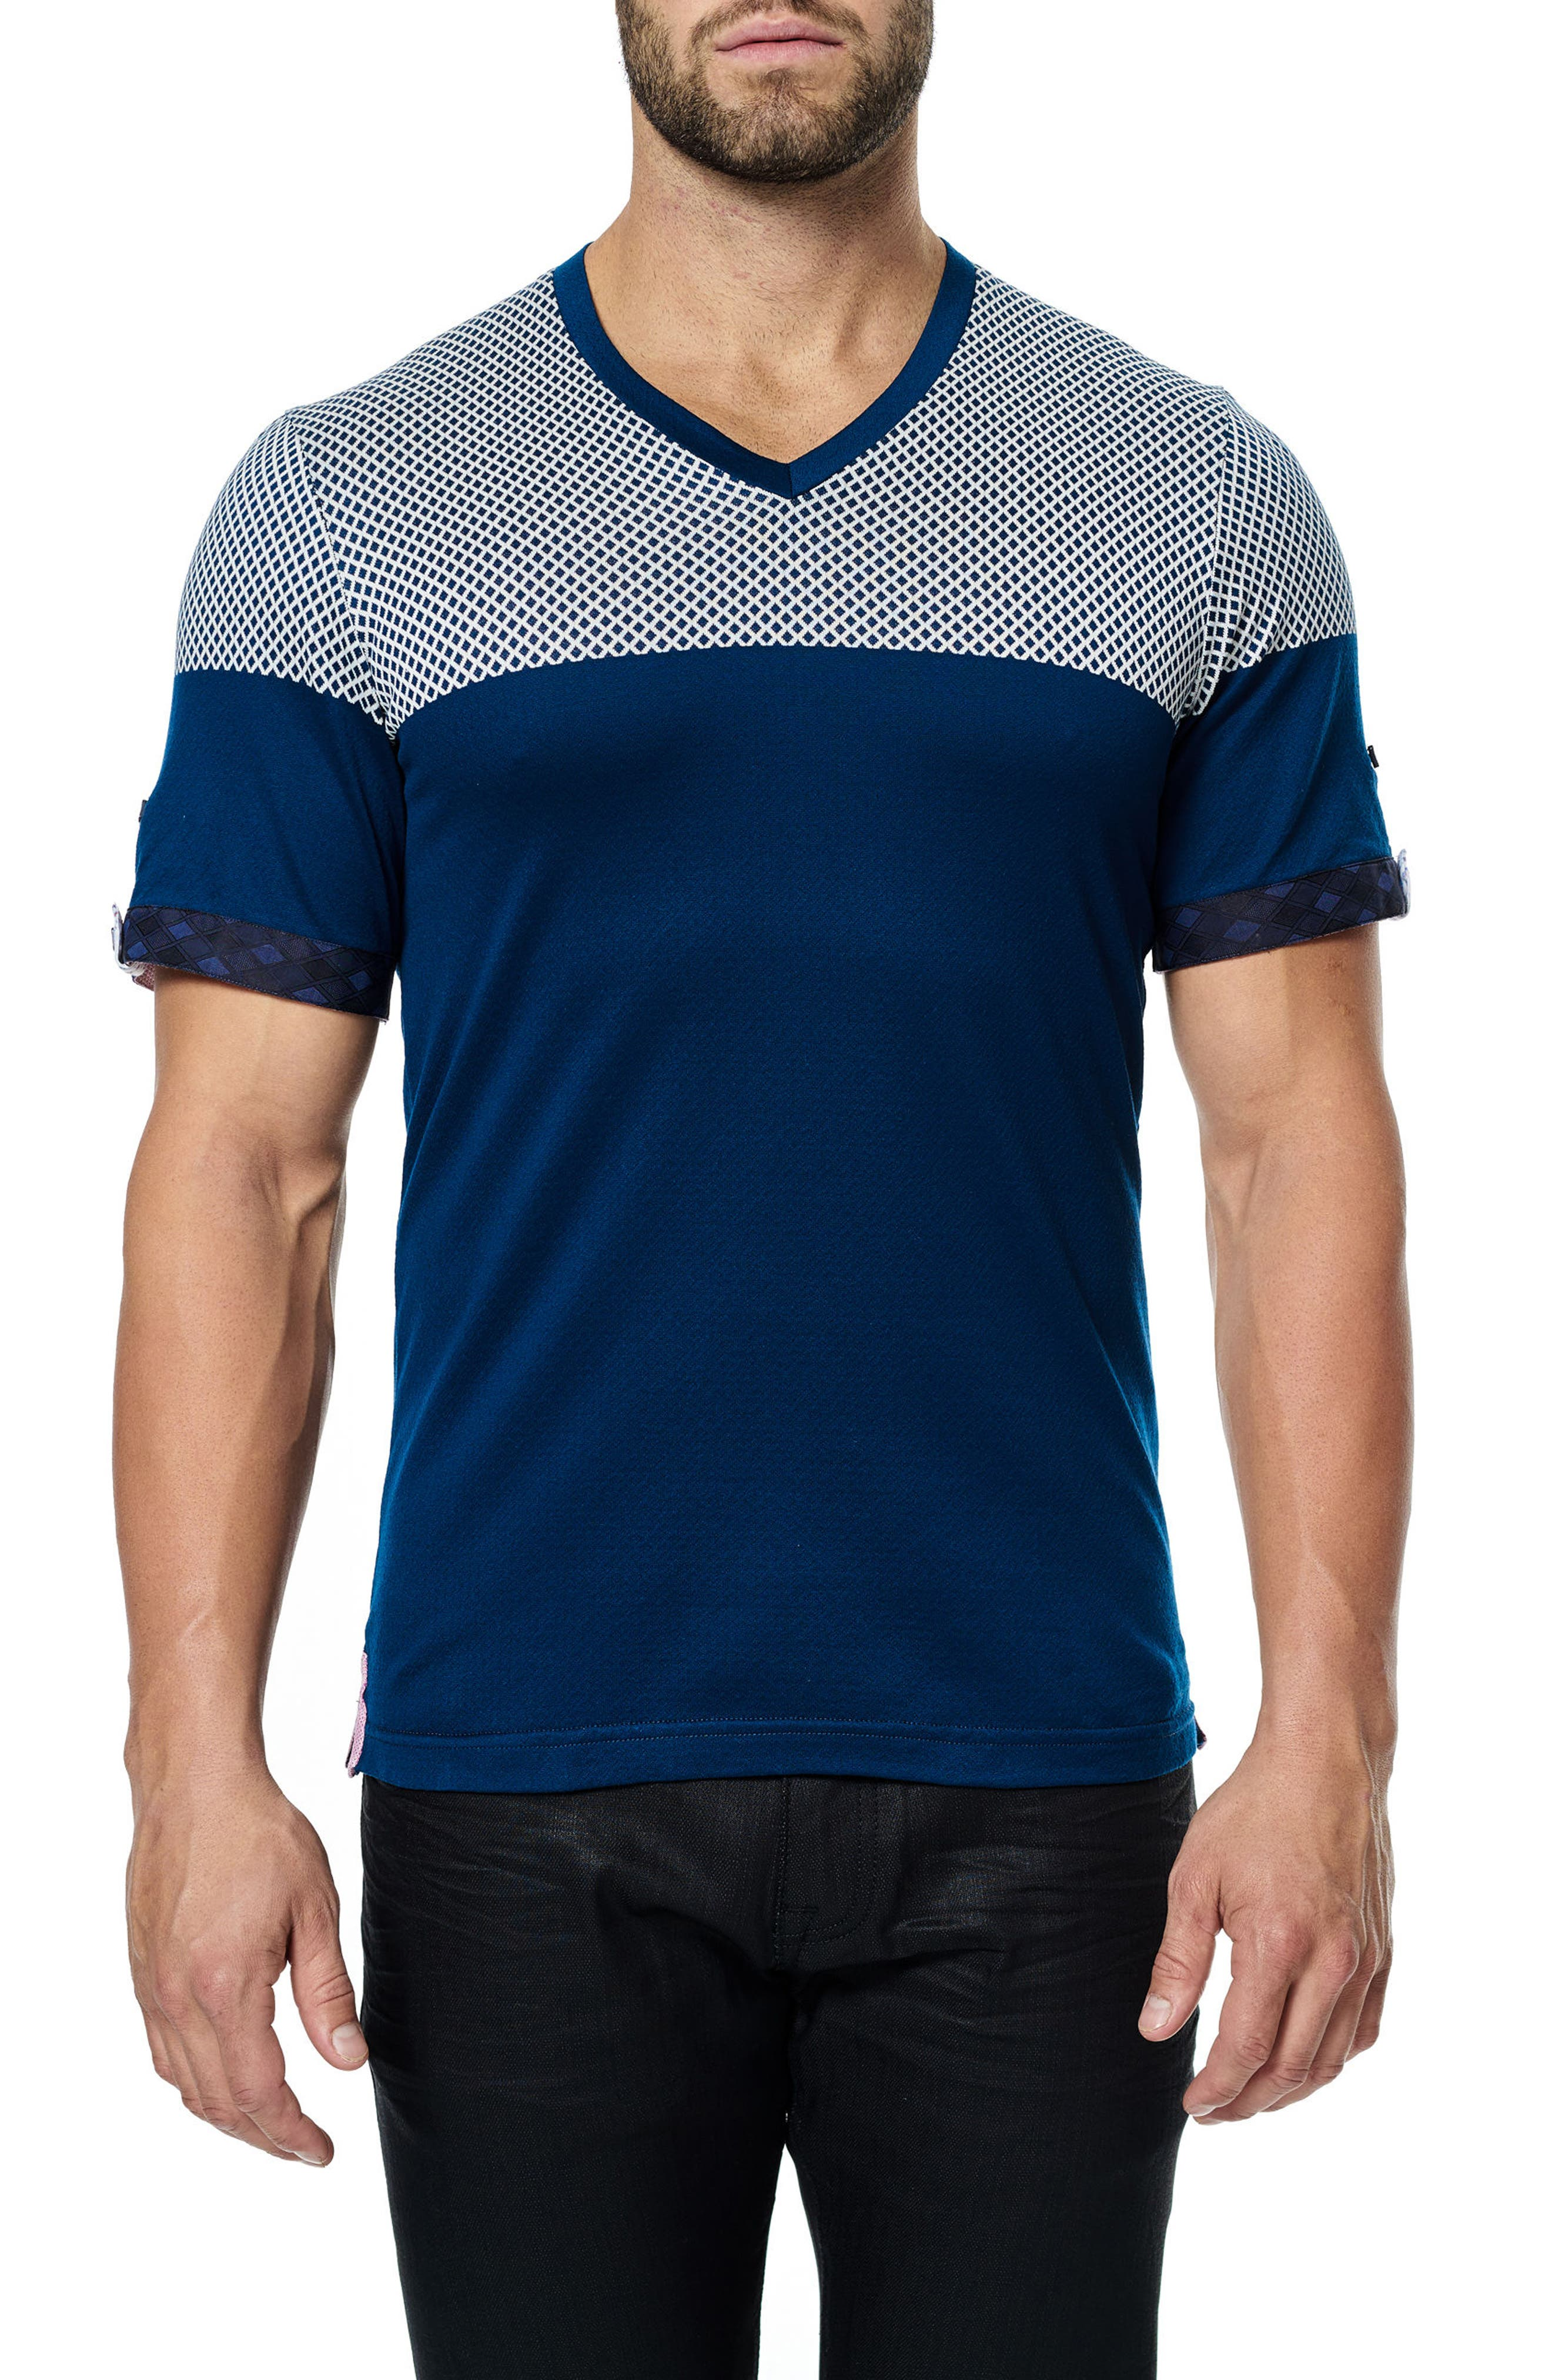 Alternate Image 1 Selected - Maceoo V-Neck Stretch T-Shirt